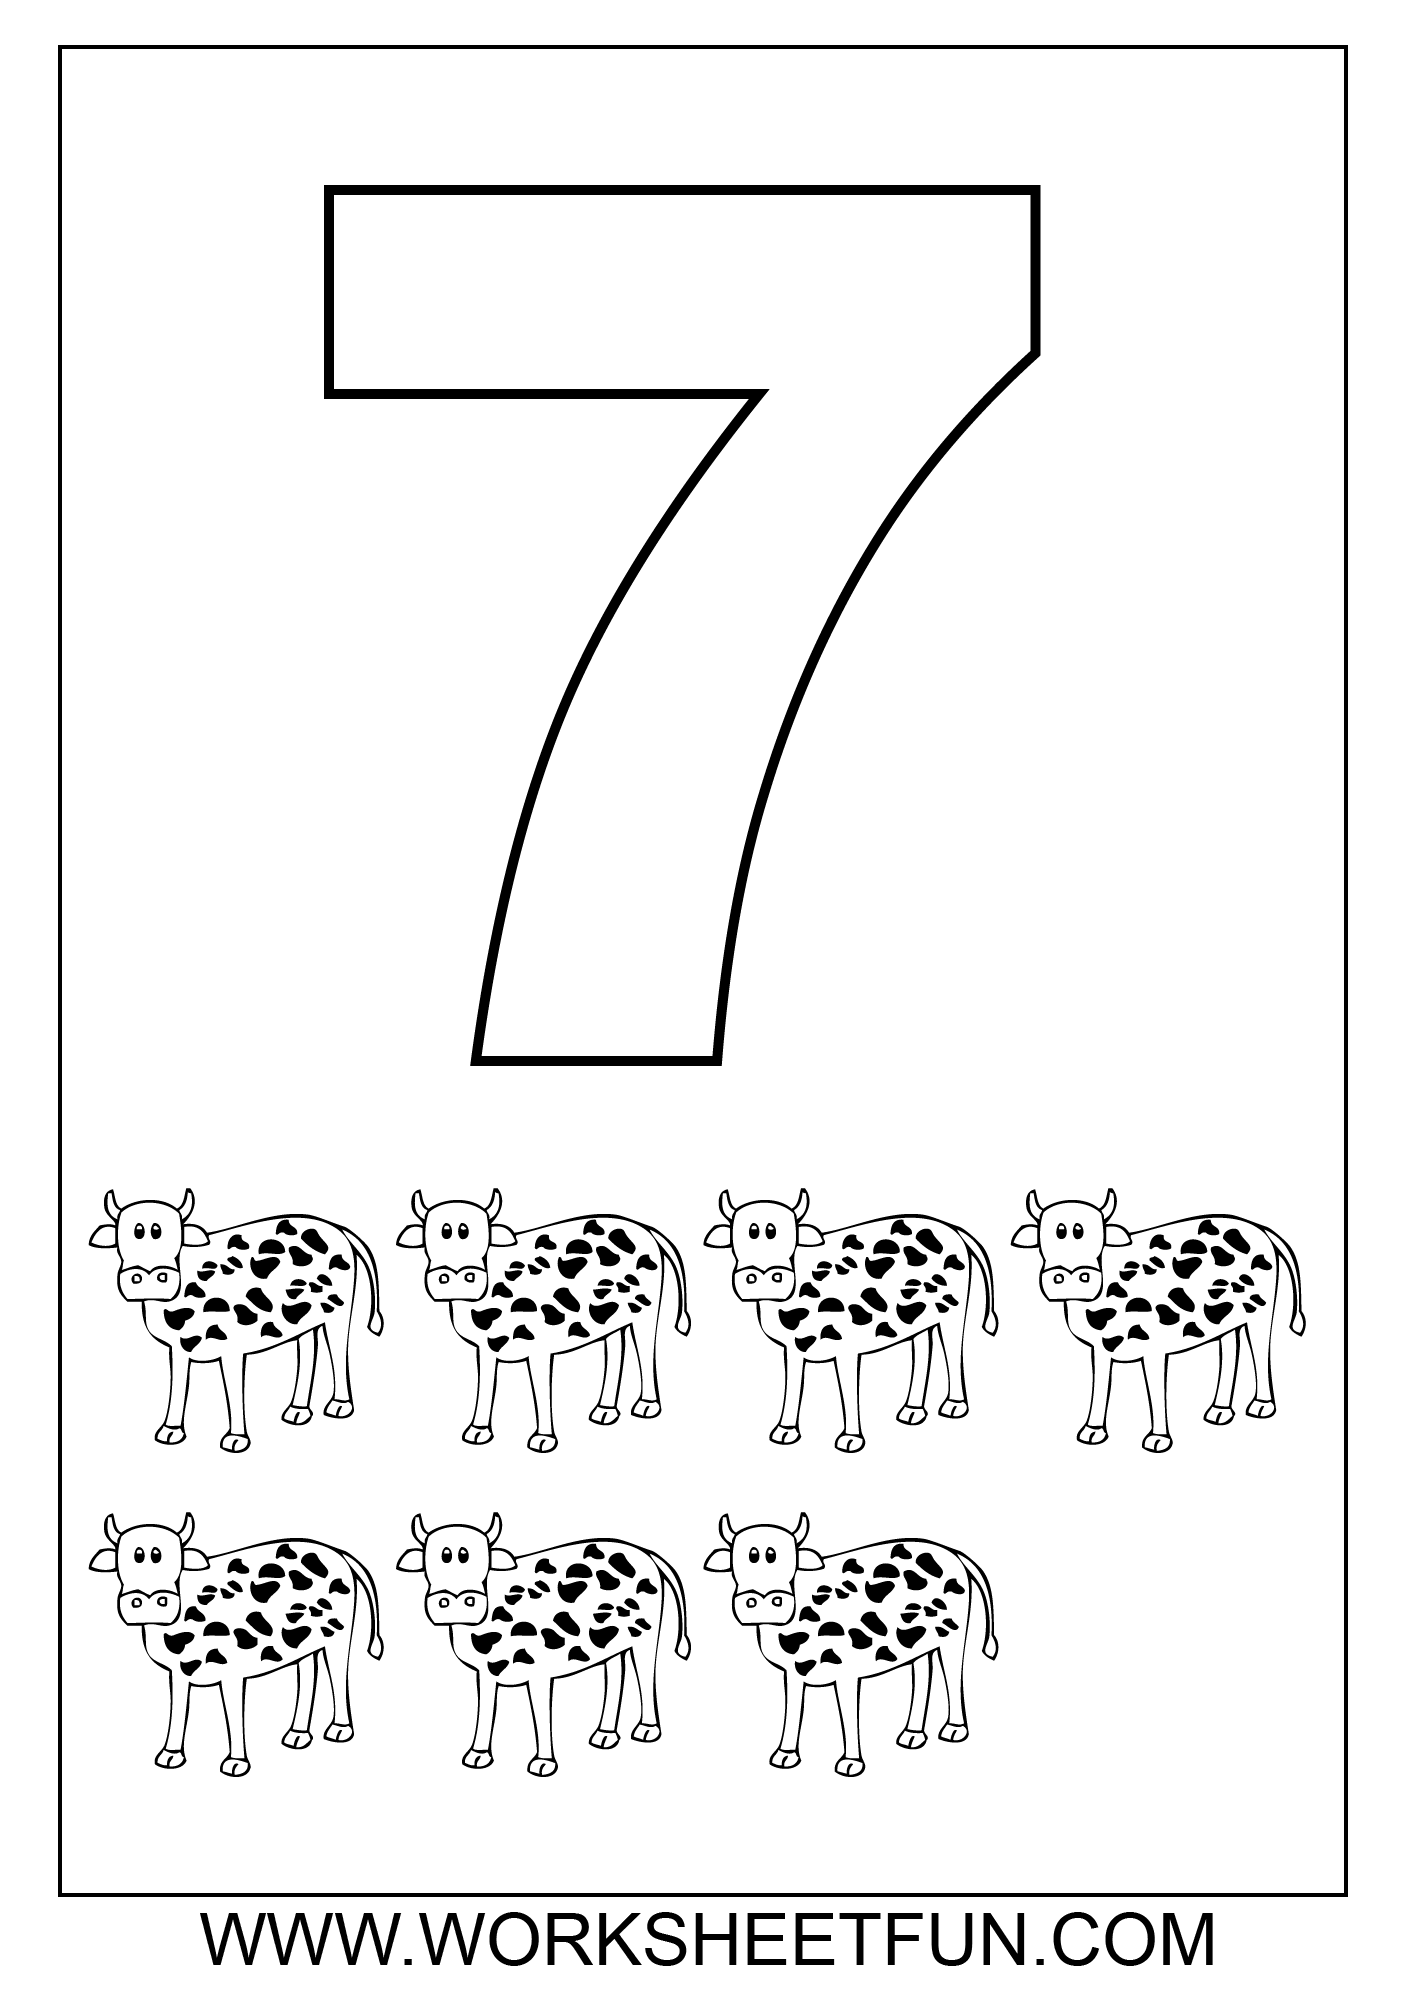 number 7 coloring pages for preschoolers coloring number 7 pdf printable activity for kids kids coloring for number 7 preschoolers pages